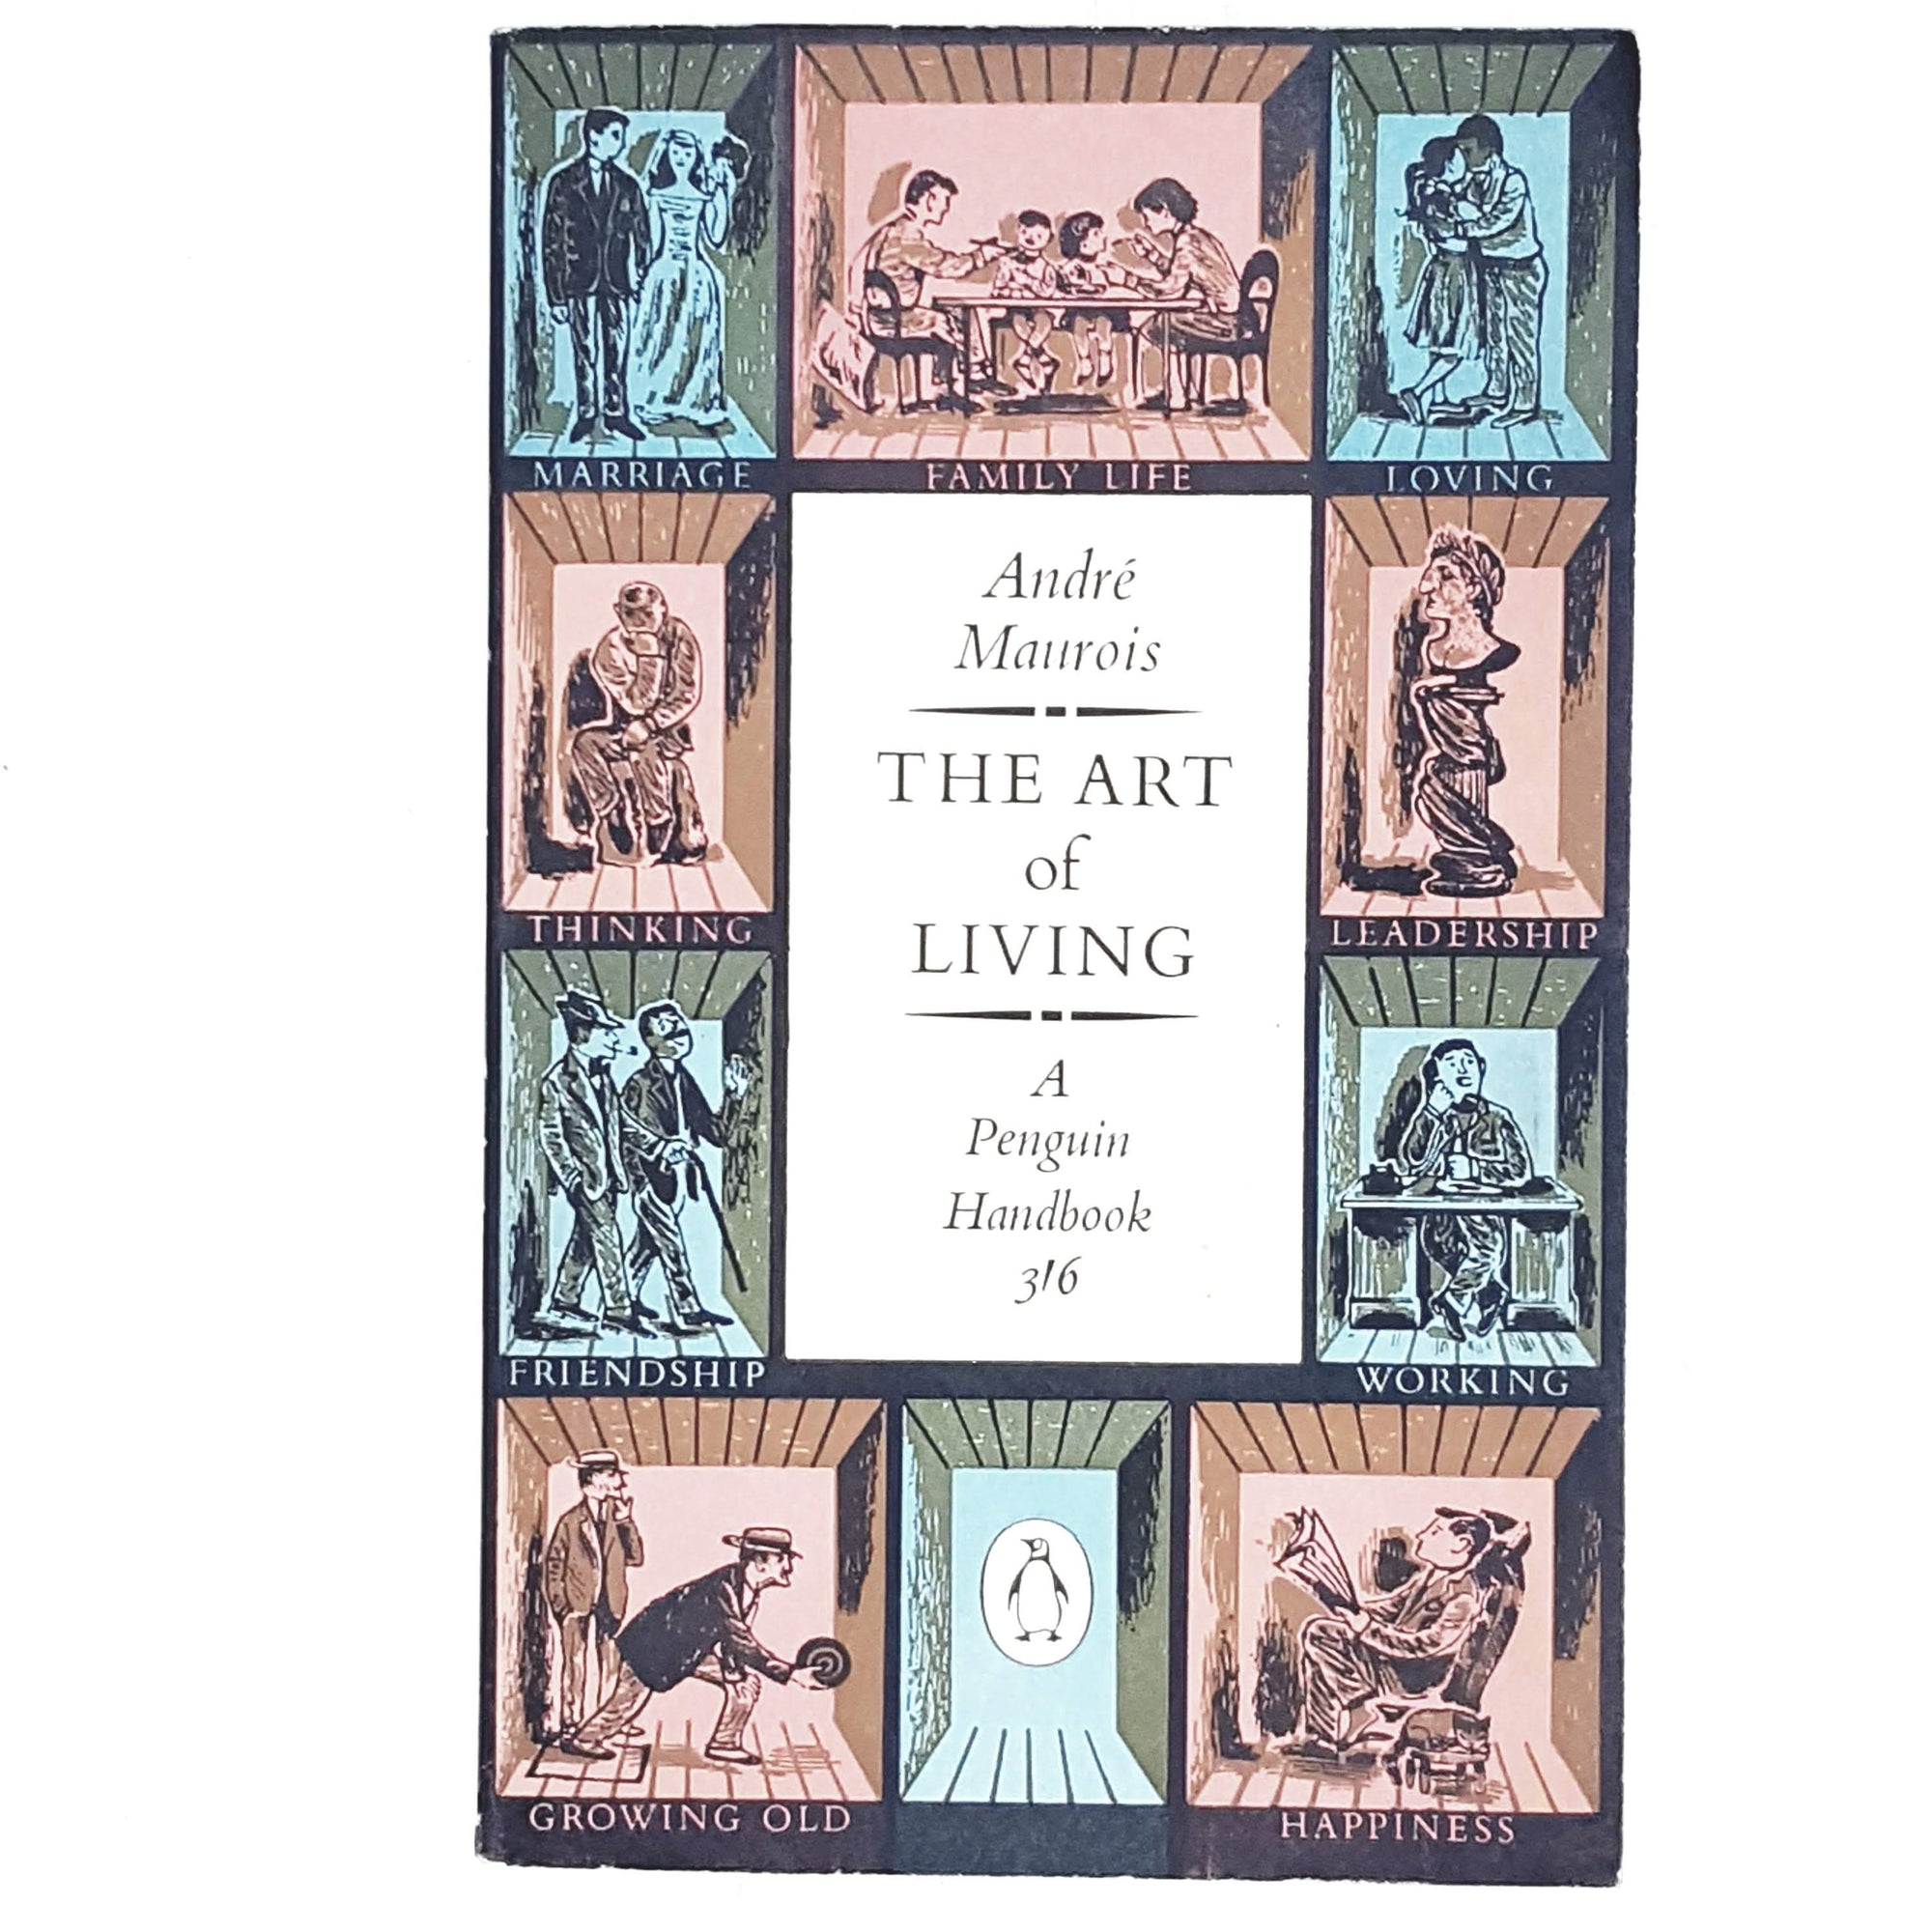 First Edition Penguin Handbook: The Art of Living by André Maurois 1960